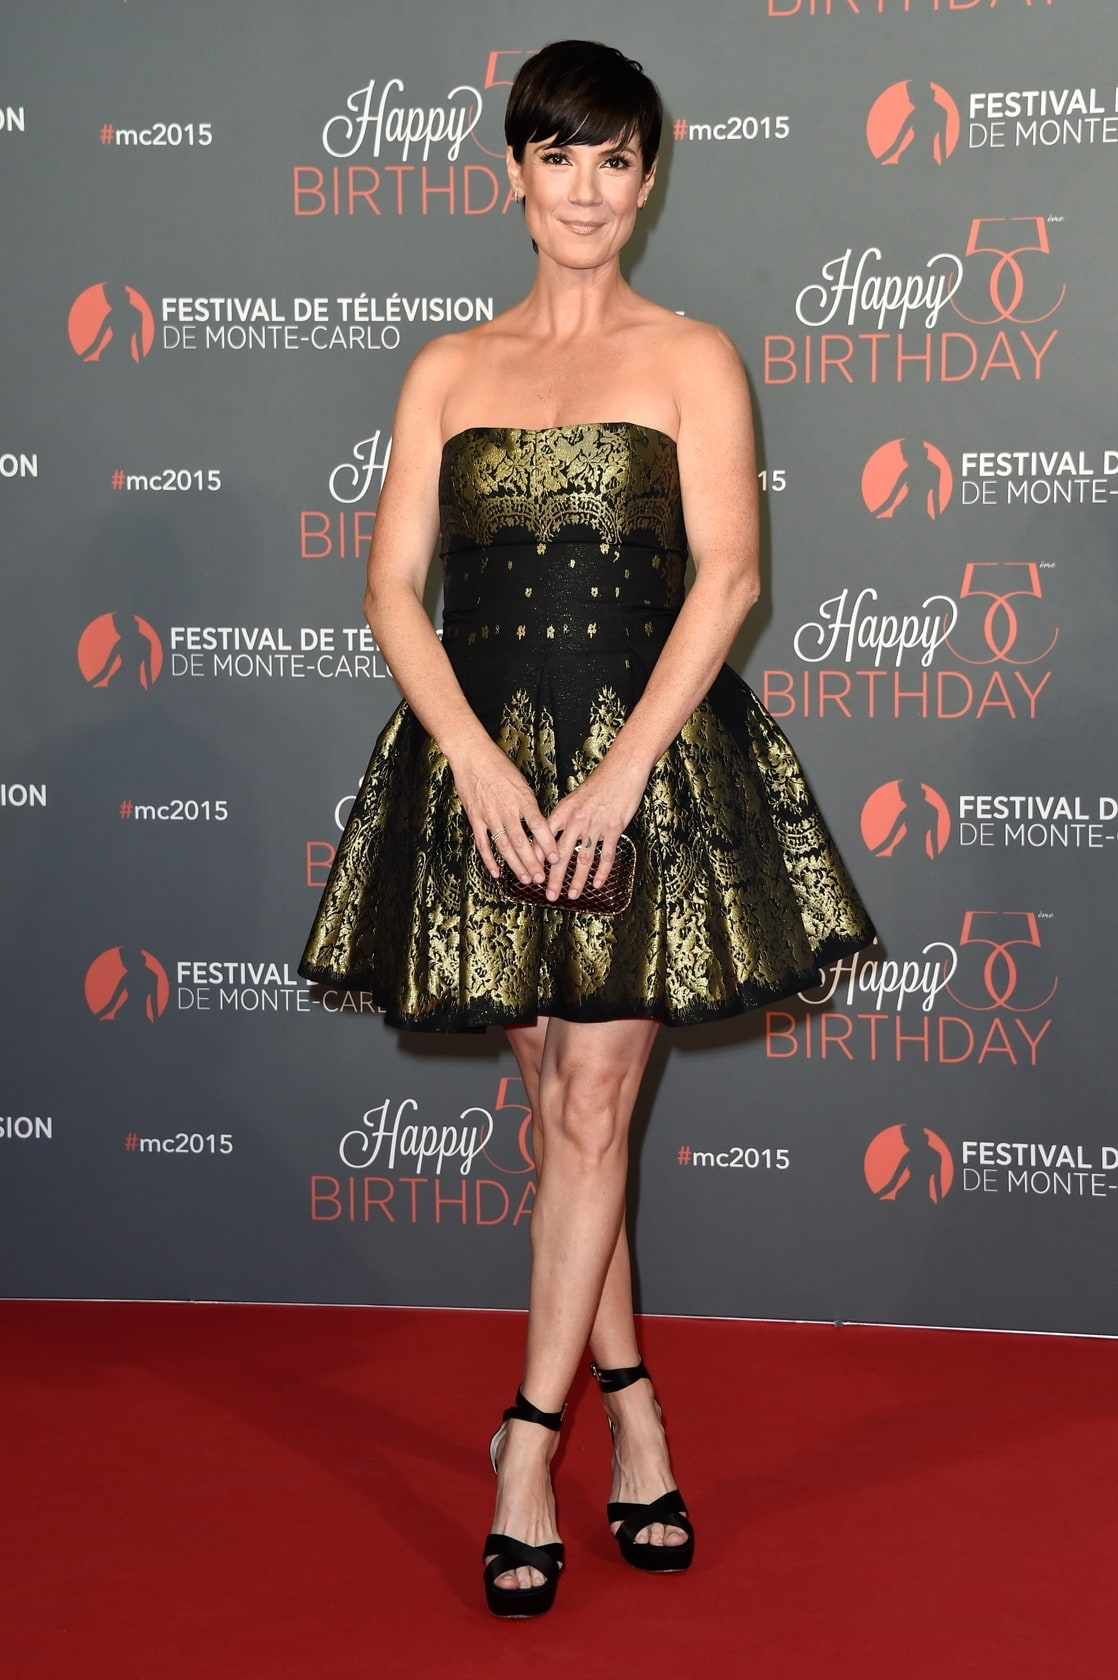 Meredith Hagner,May Kitson Sex video Nana Visitor born July 26, 1957 (age 61),Rie Rasmussen DEN 1 2001